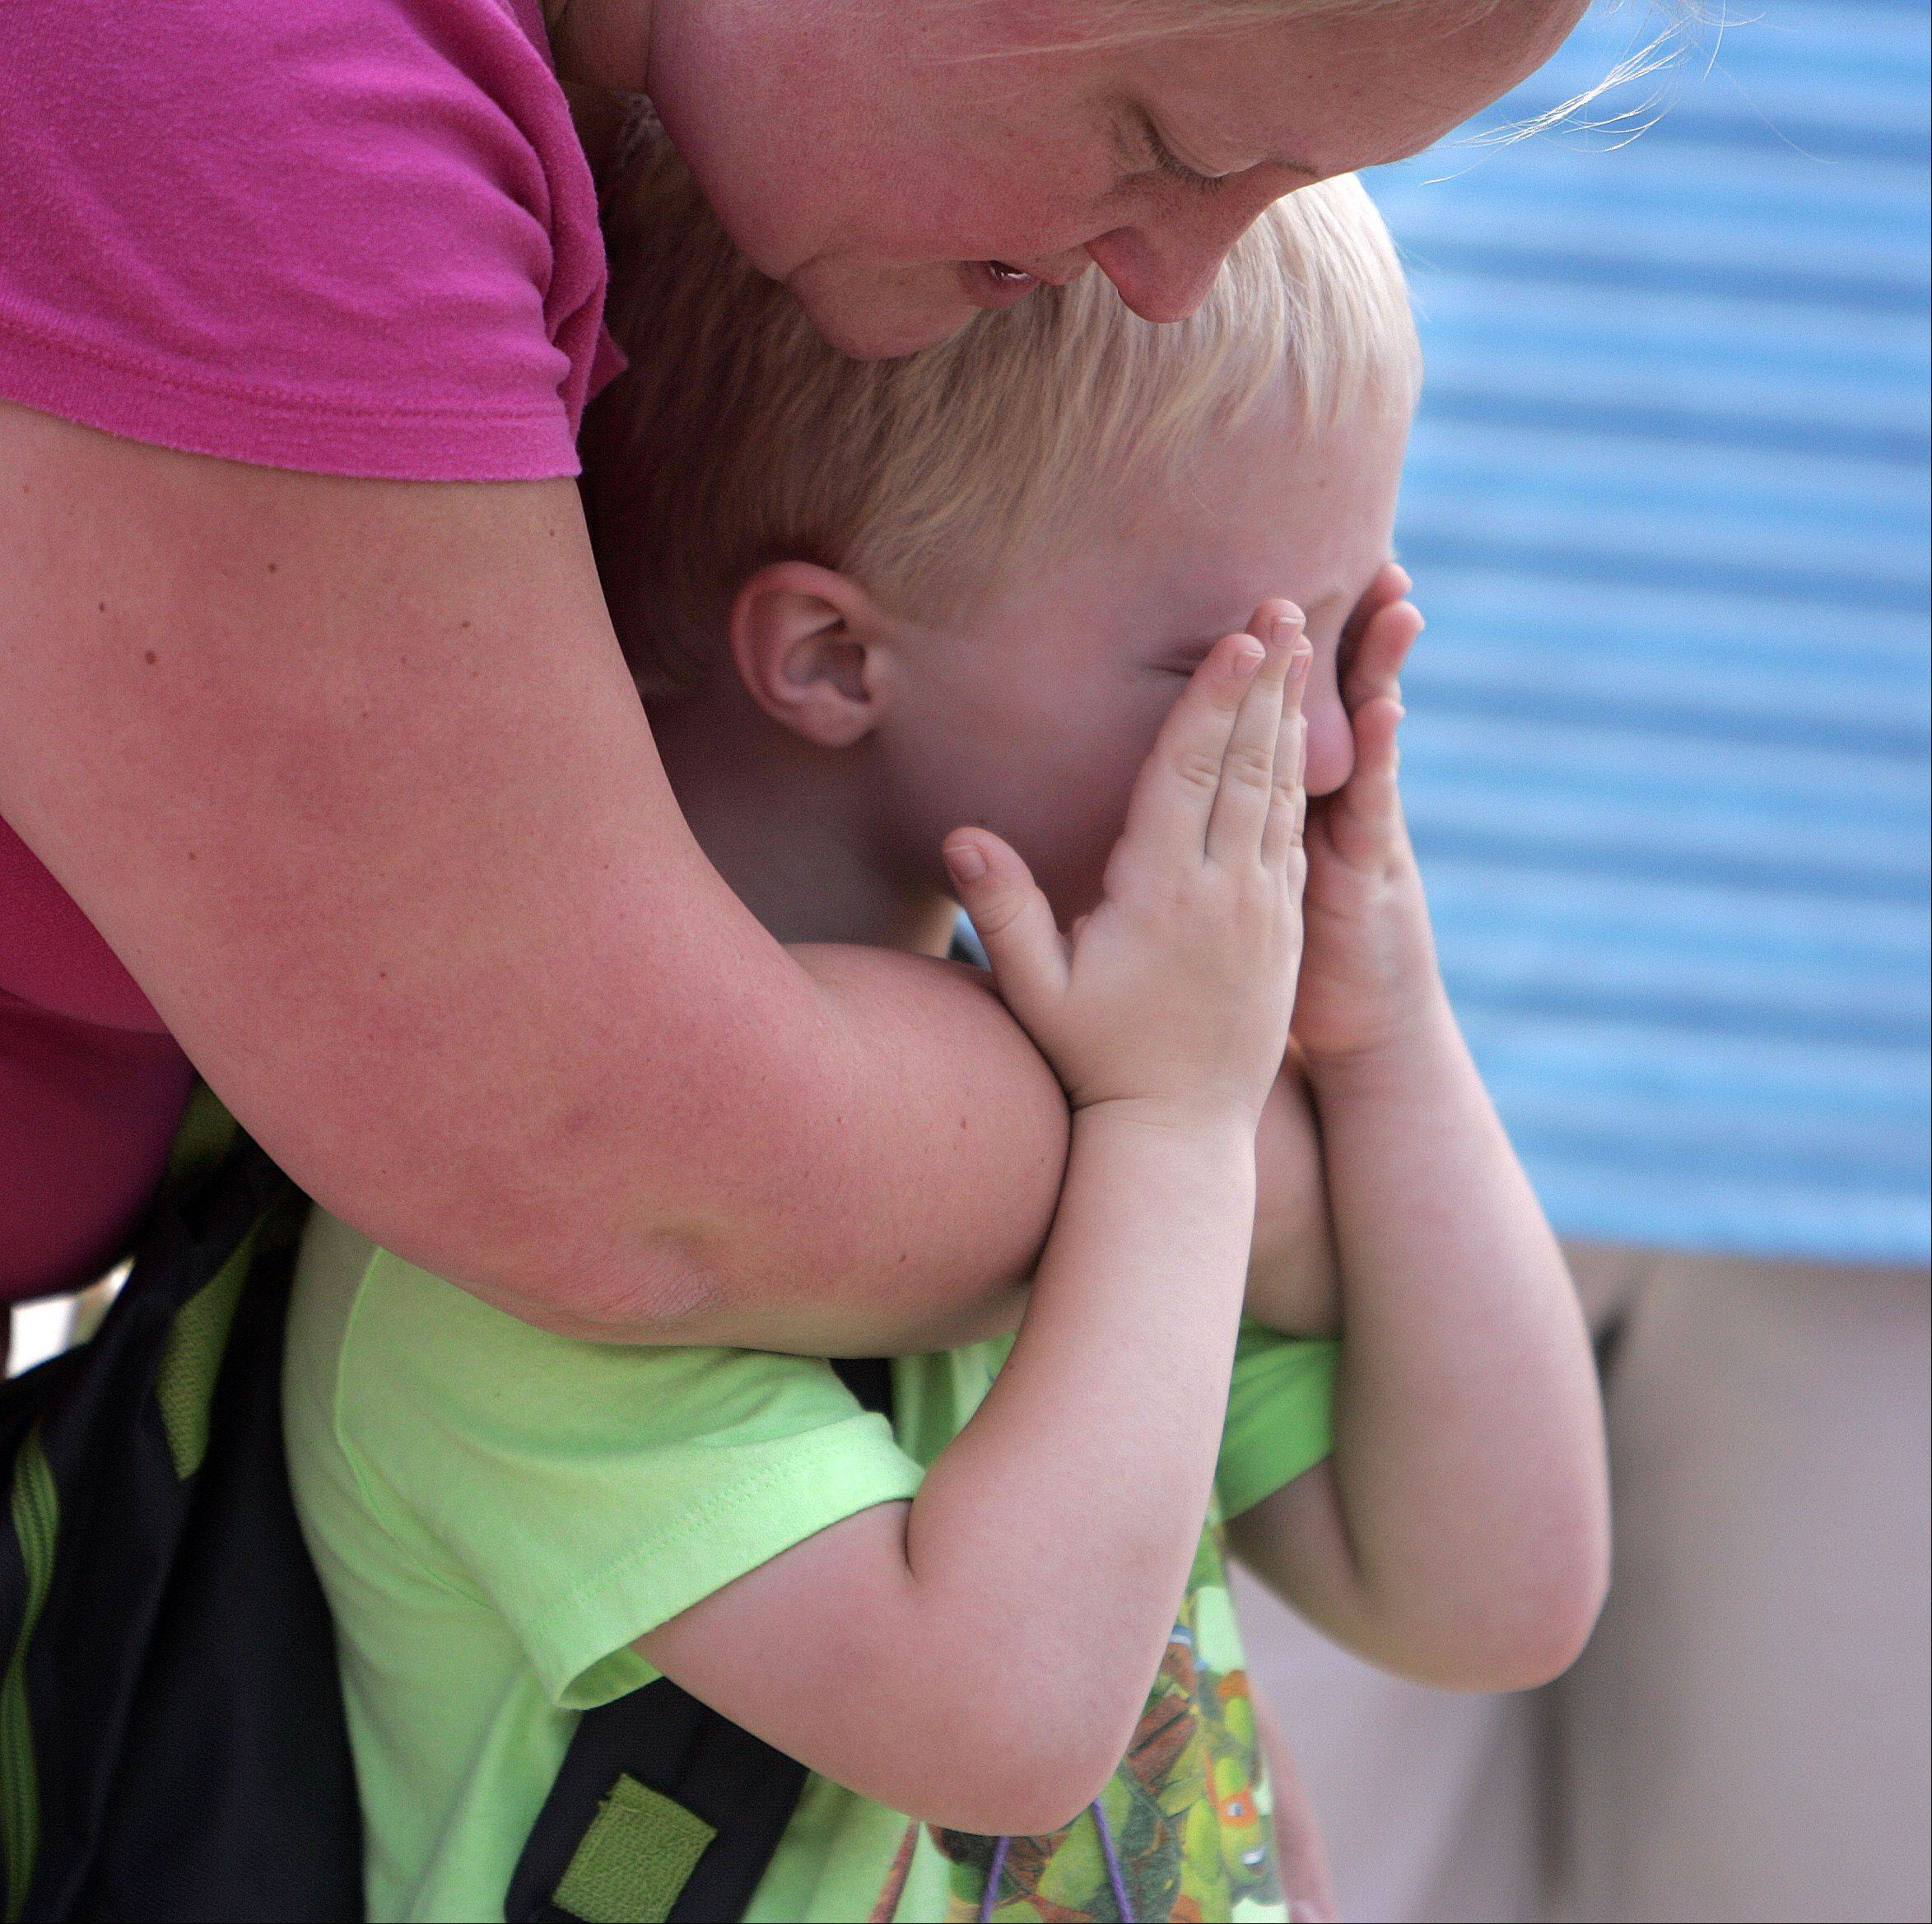 Sebastian Gruener, 5, is comforted by his mom, Coreen Larson, before Tuesday's first day of school at H.C. Storm Elementary School in Batavia. Sebastian, who was originally reluctant about kindergarten, walked right into class with the rest of the students.